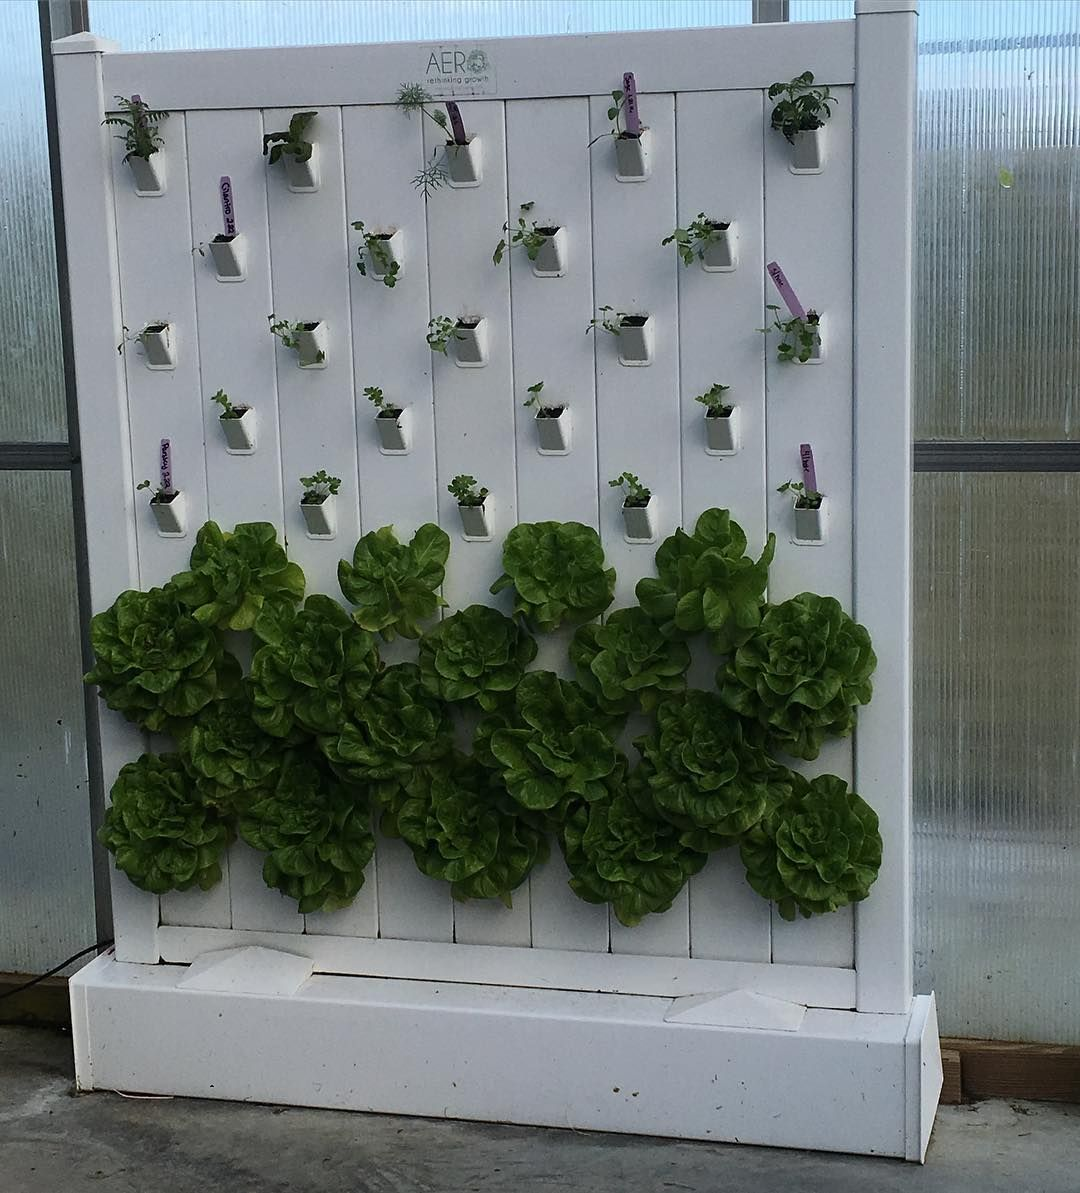 loved this wall of the lettuce growing using aeroponics